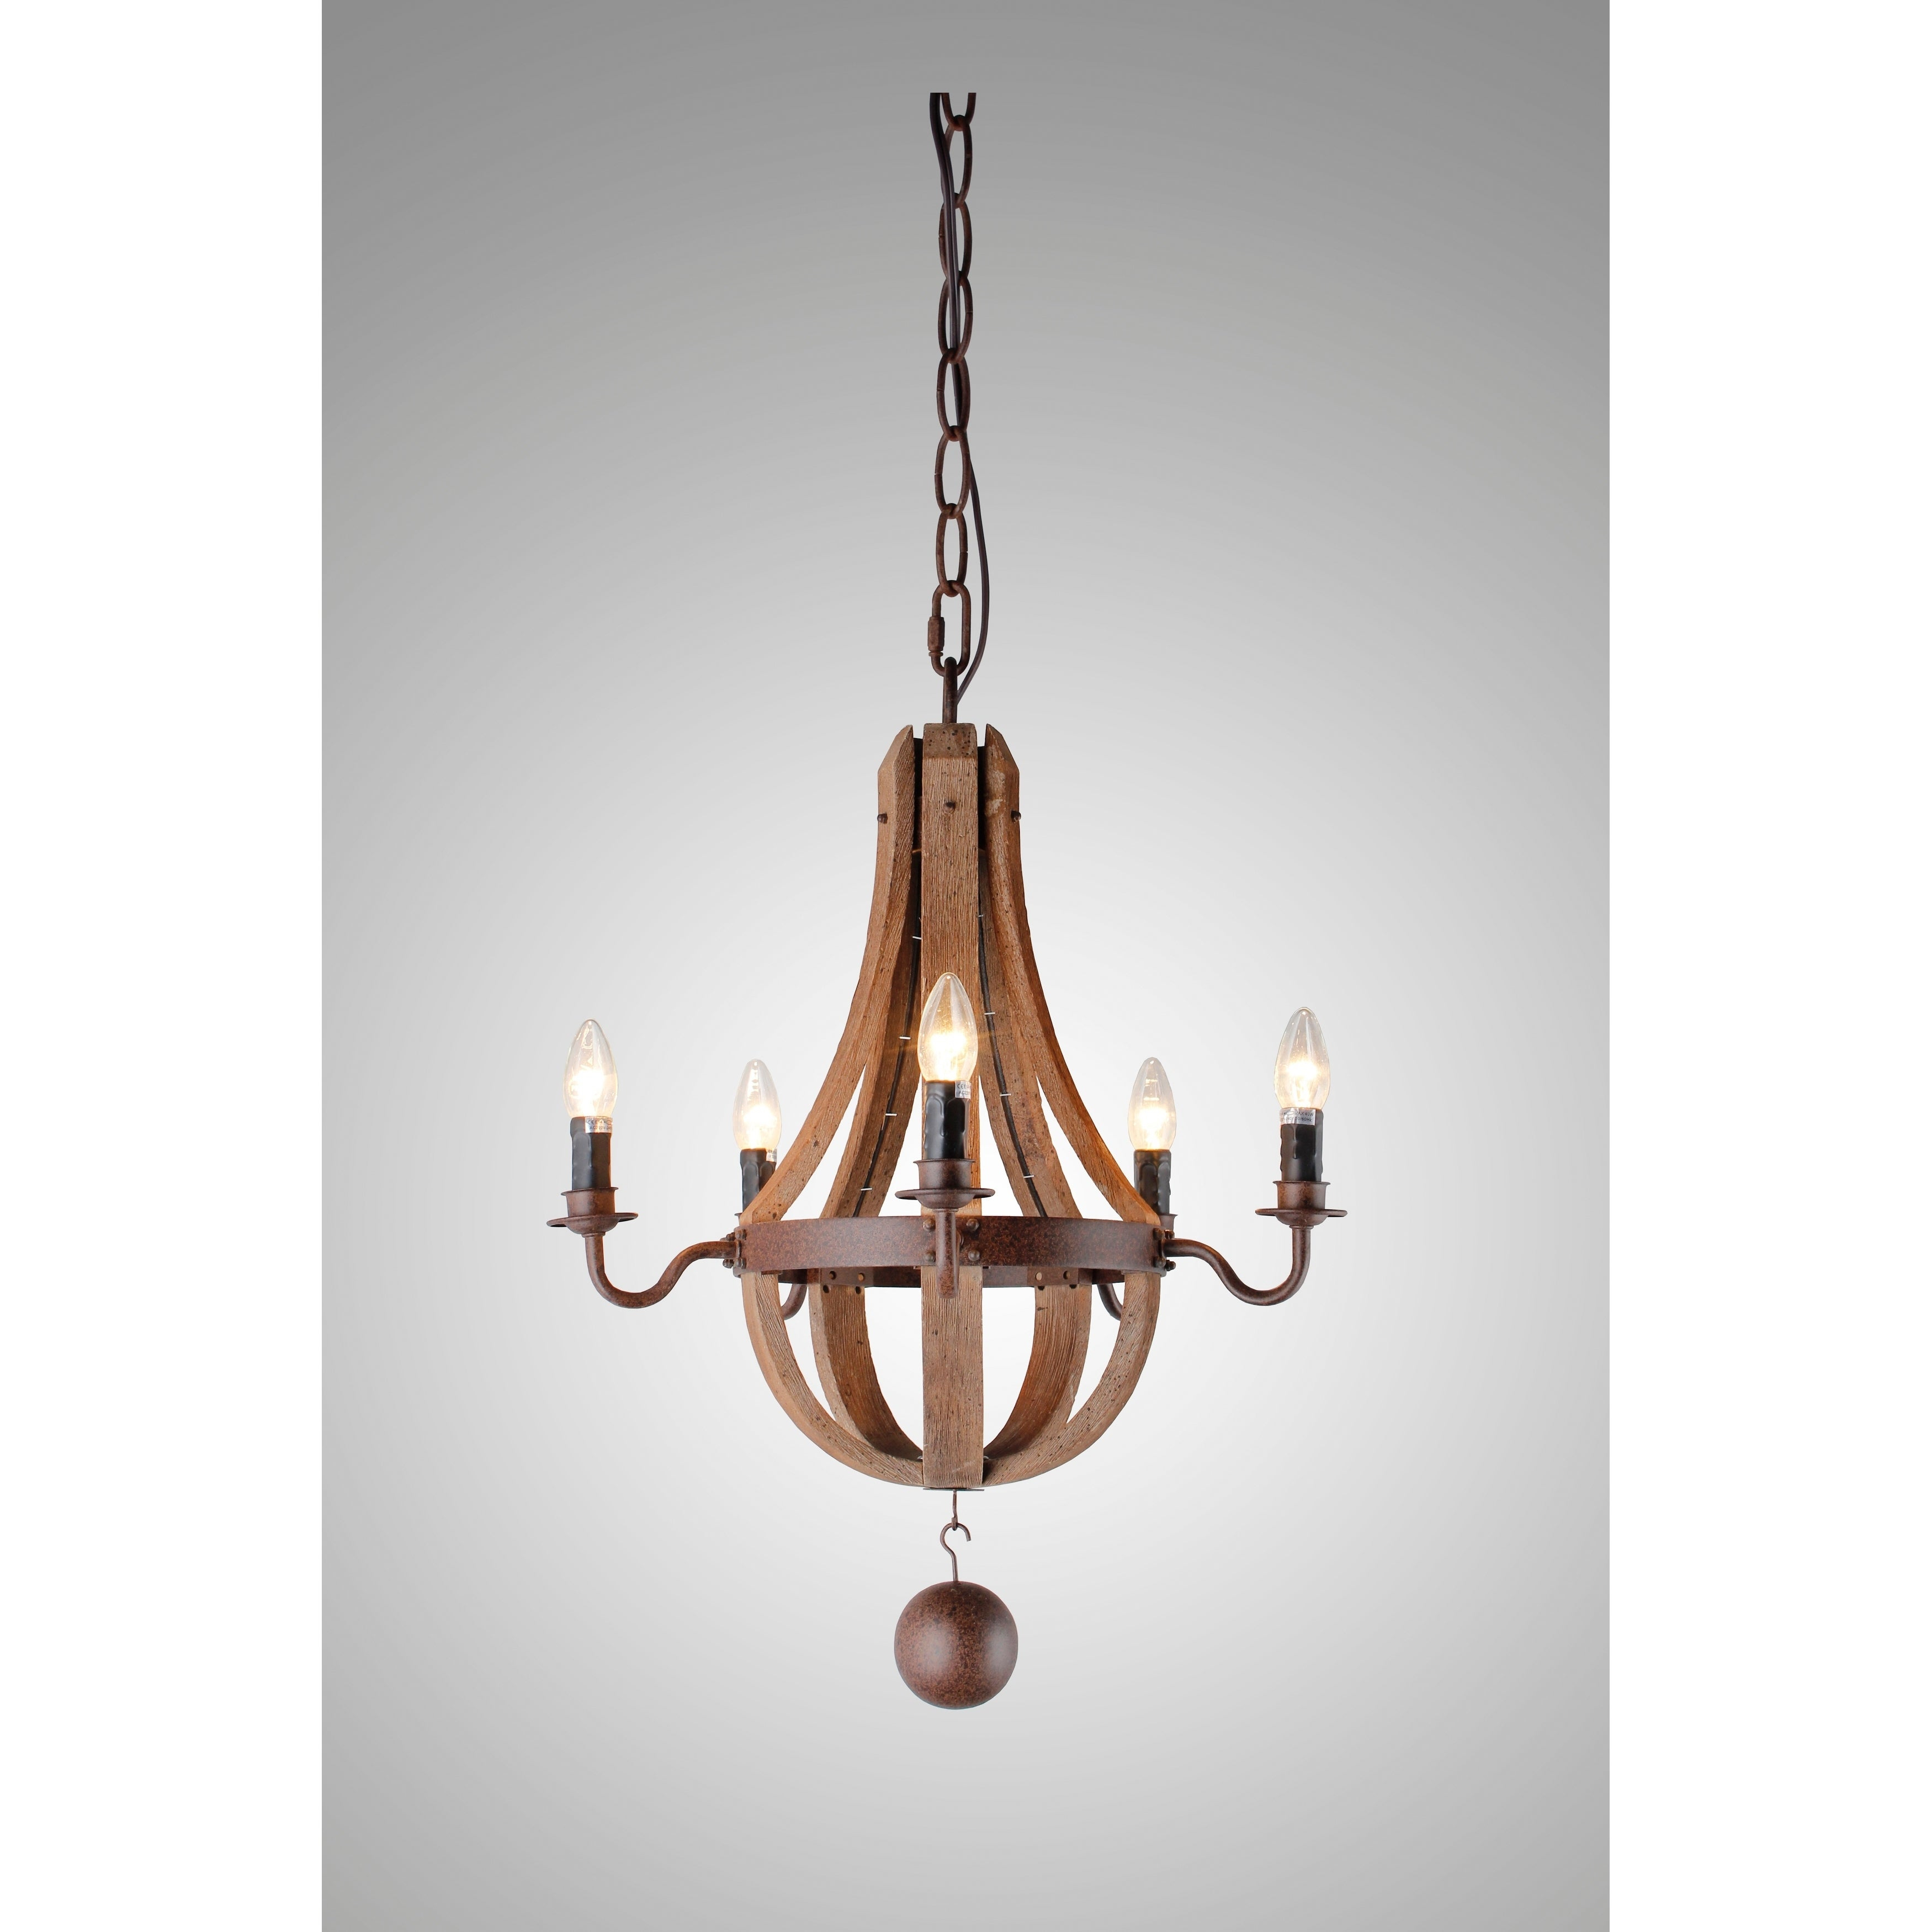 Y Decor 5 Light Candle Style Chandelier In Iron Frame & Rustic Finish Pertaining To Berger 5 Light Candle Style Chandeliers (View 14 of 30)